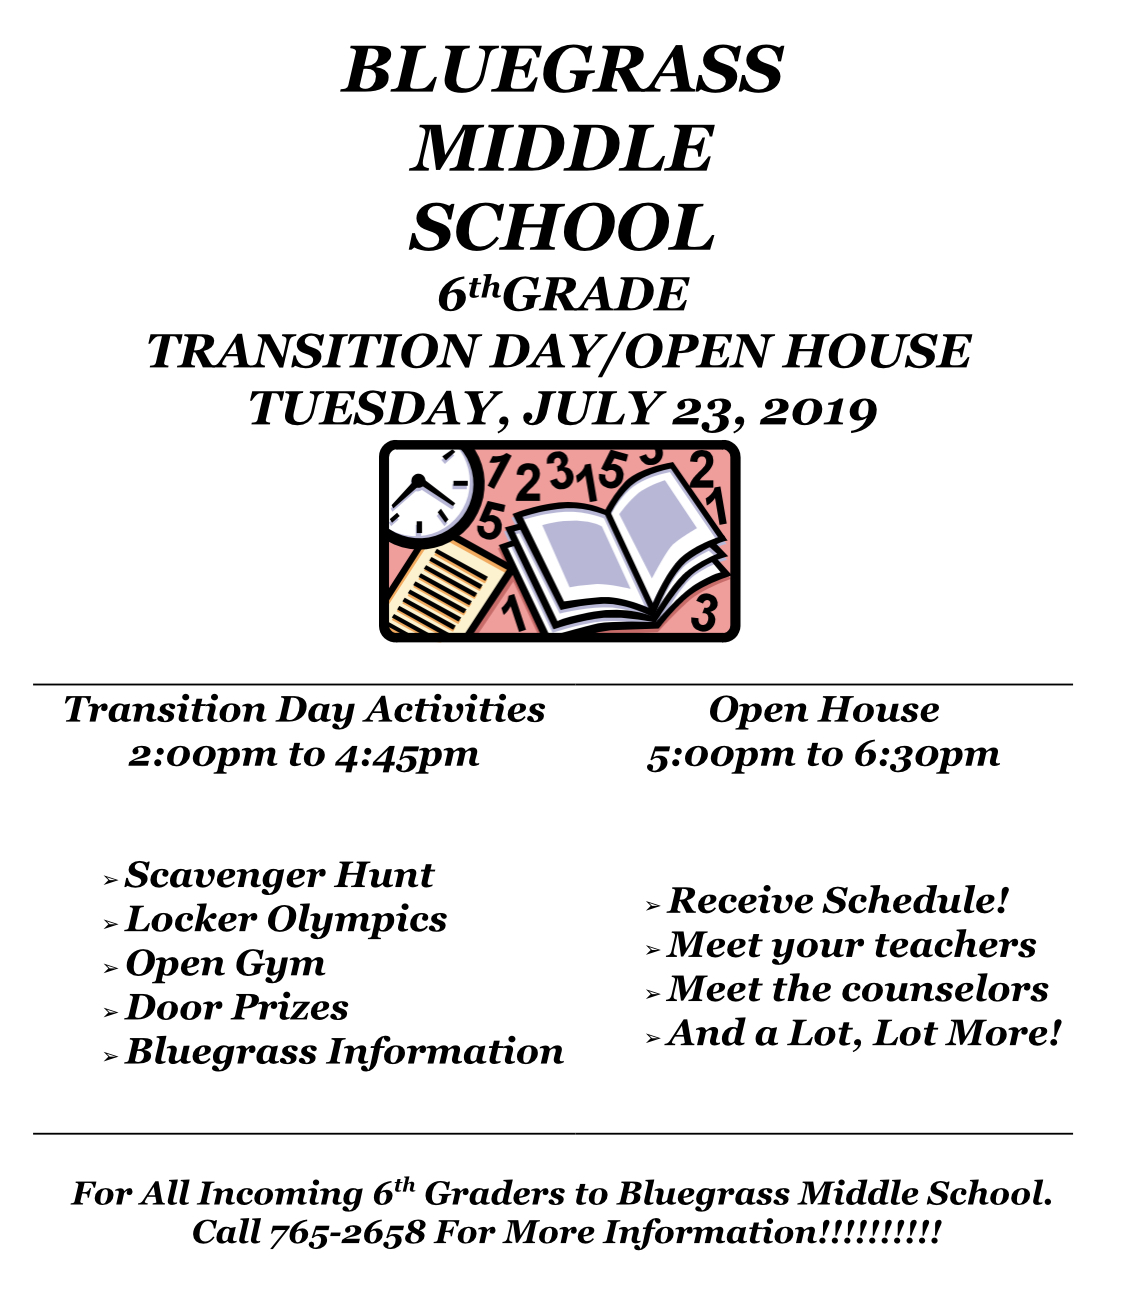 Transition Day/Open House